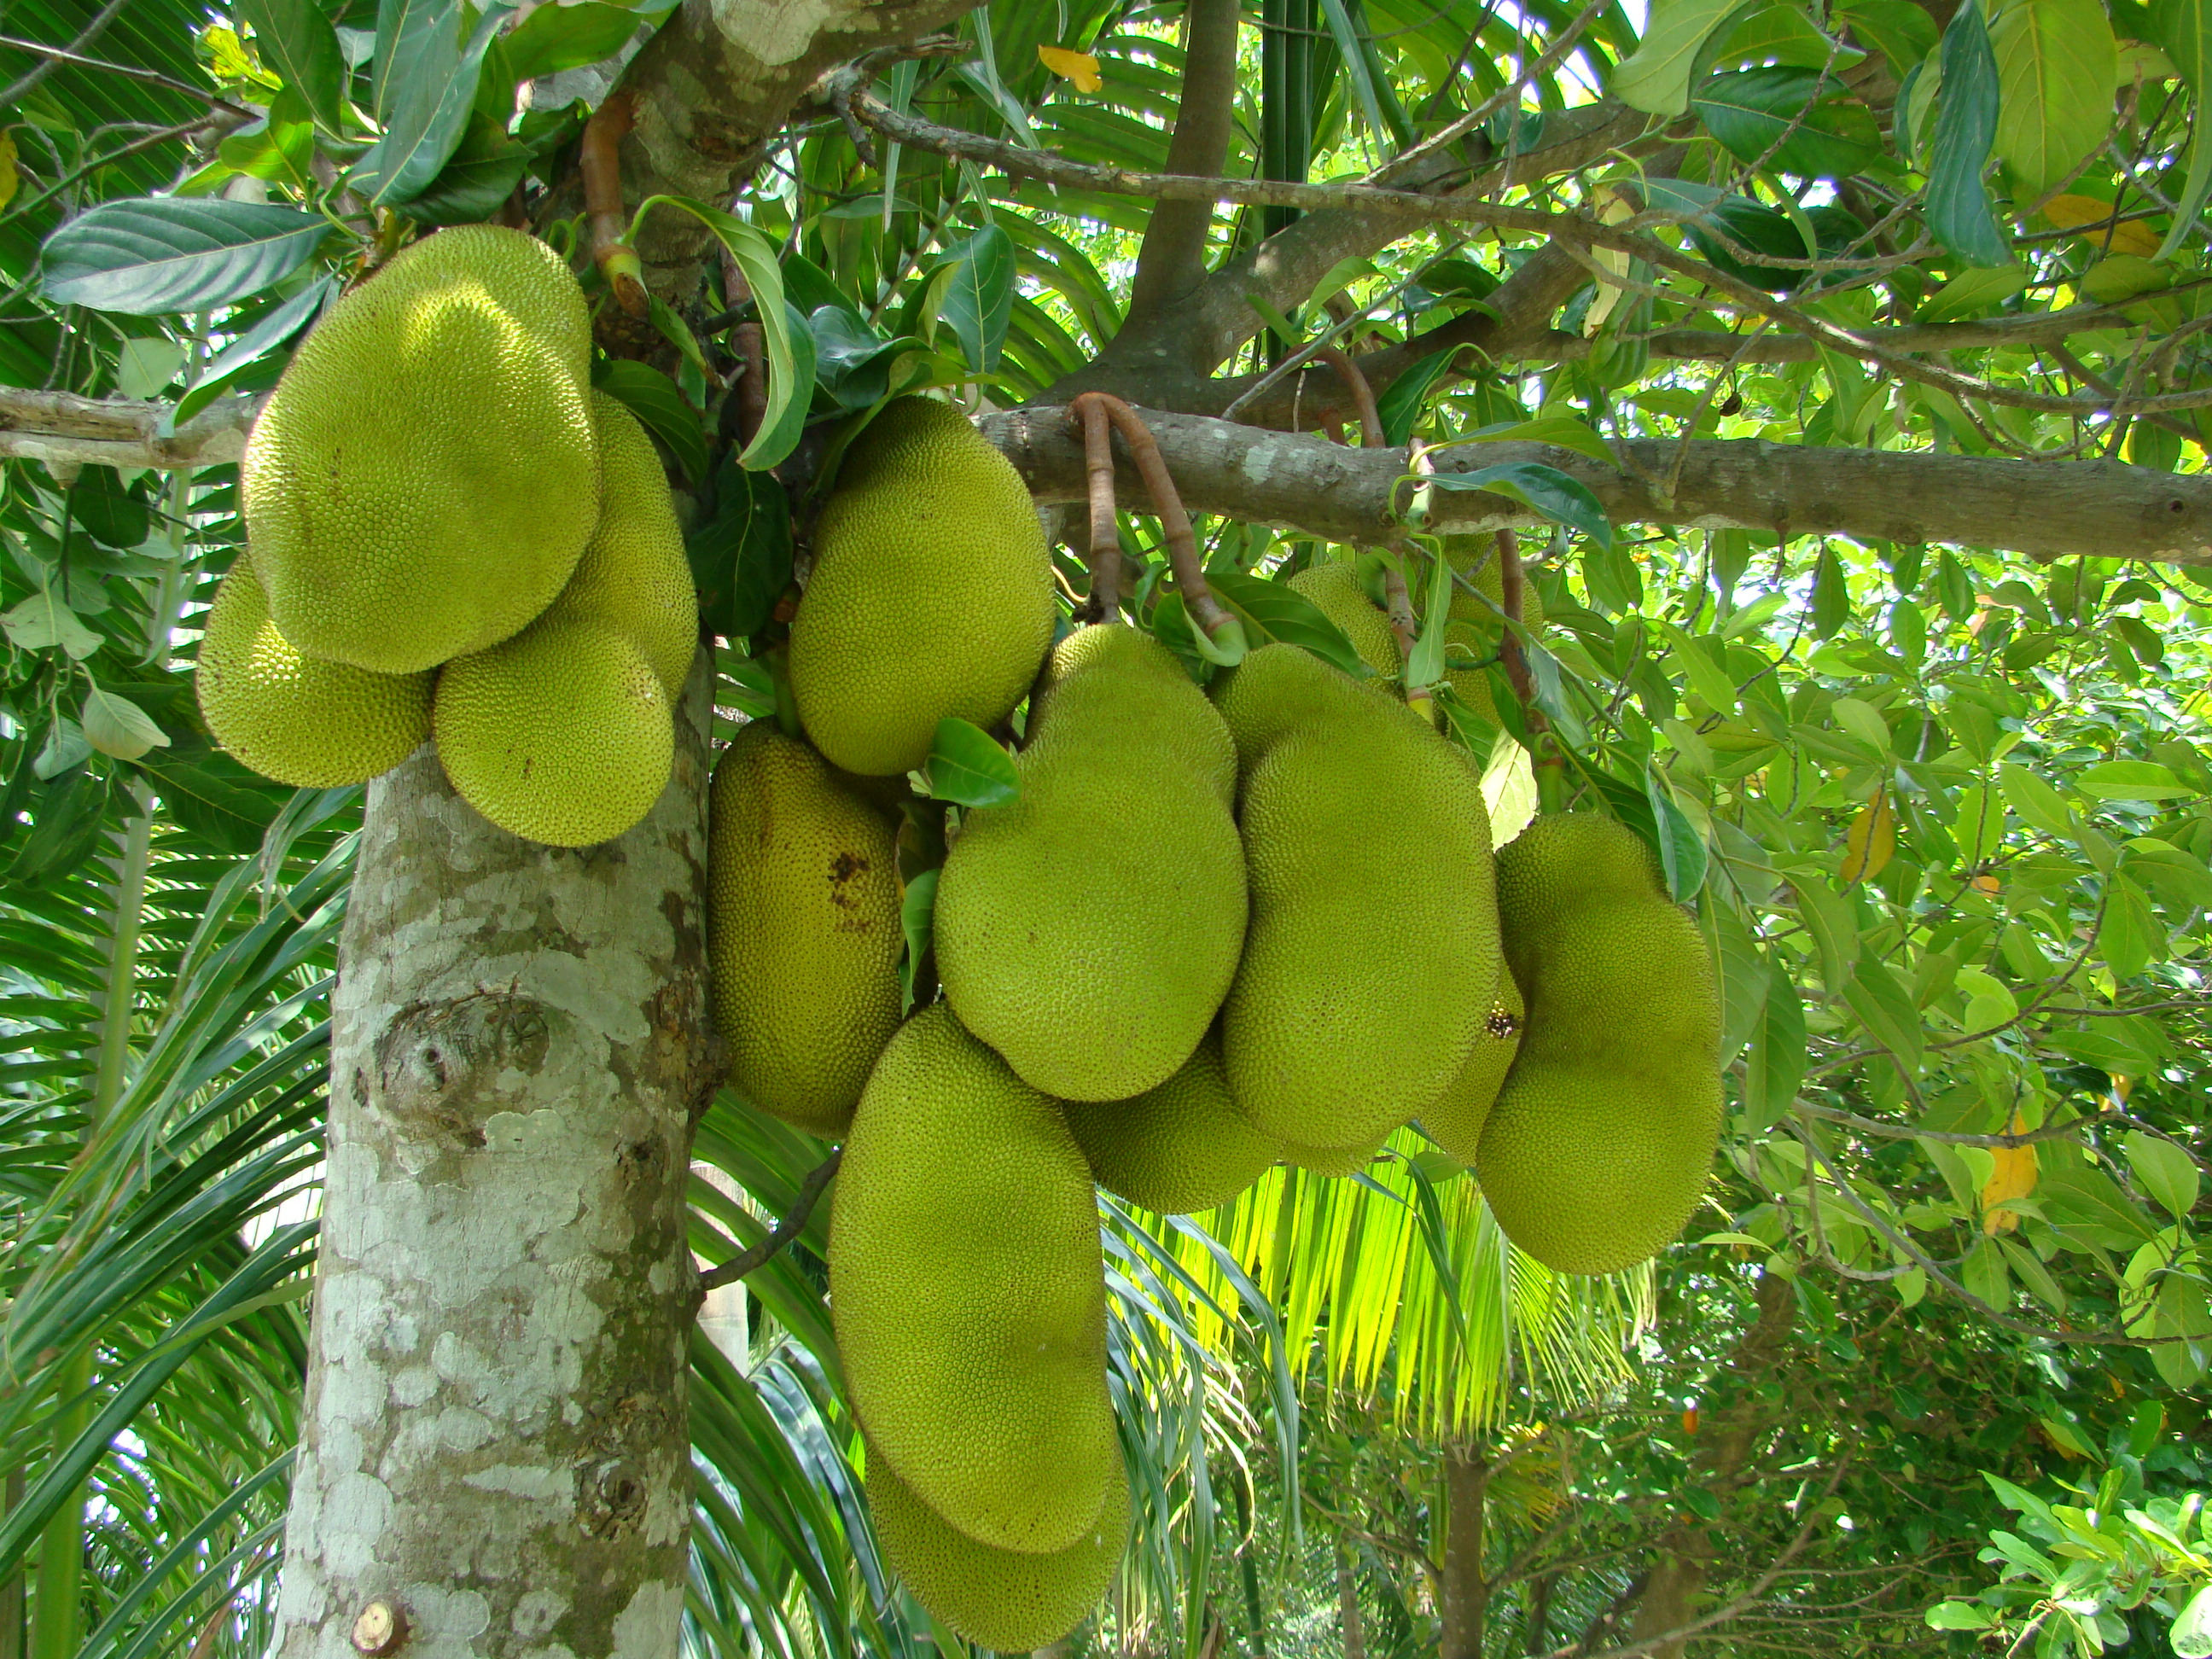 Jackfruit Tree-Jackfruit Tree (പ്ലാവ്) largest and tallest evergreen tree